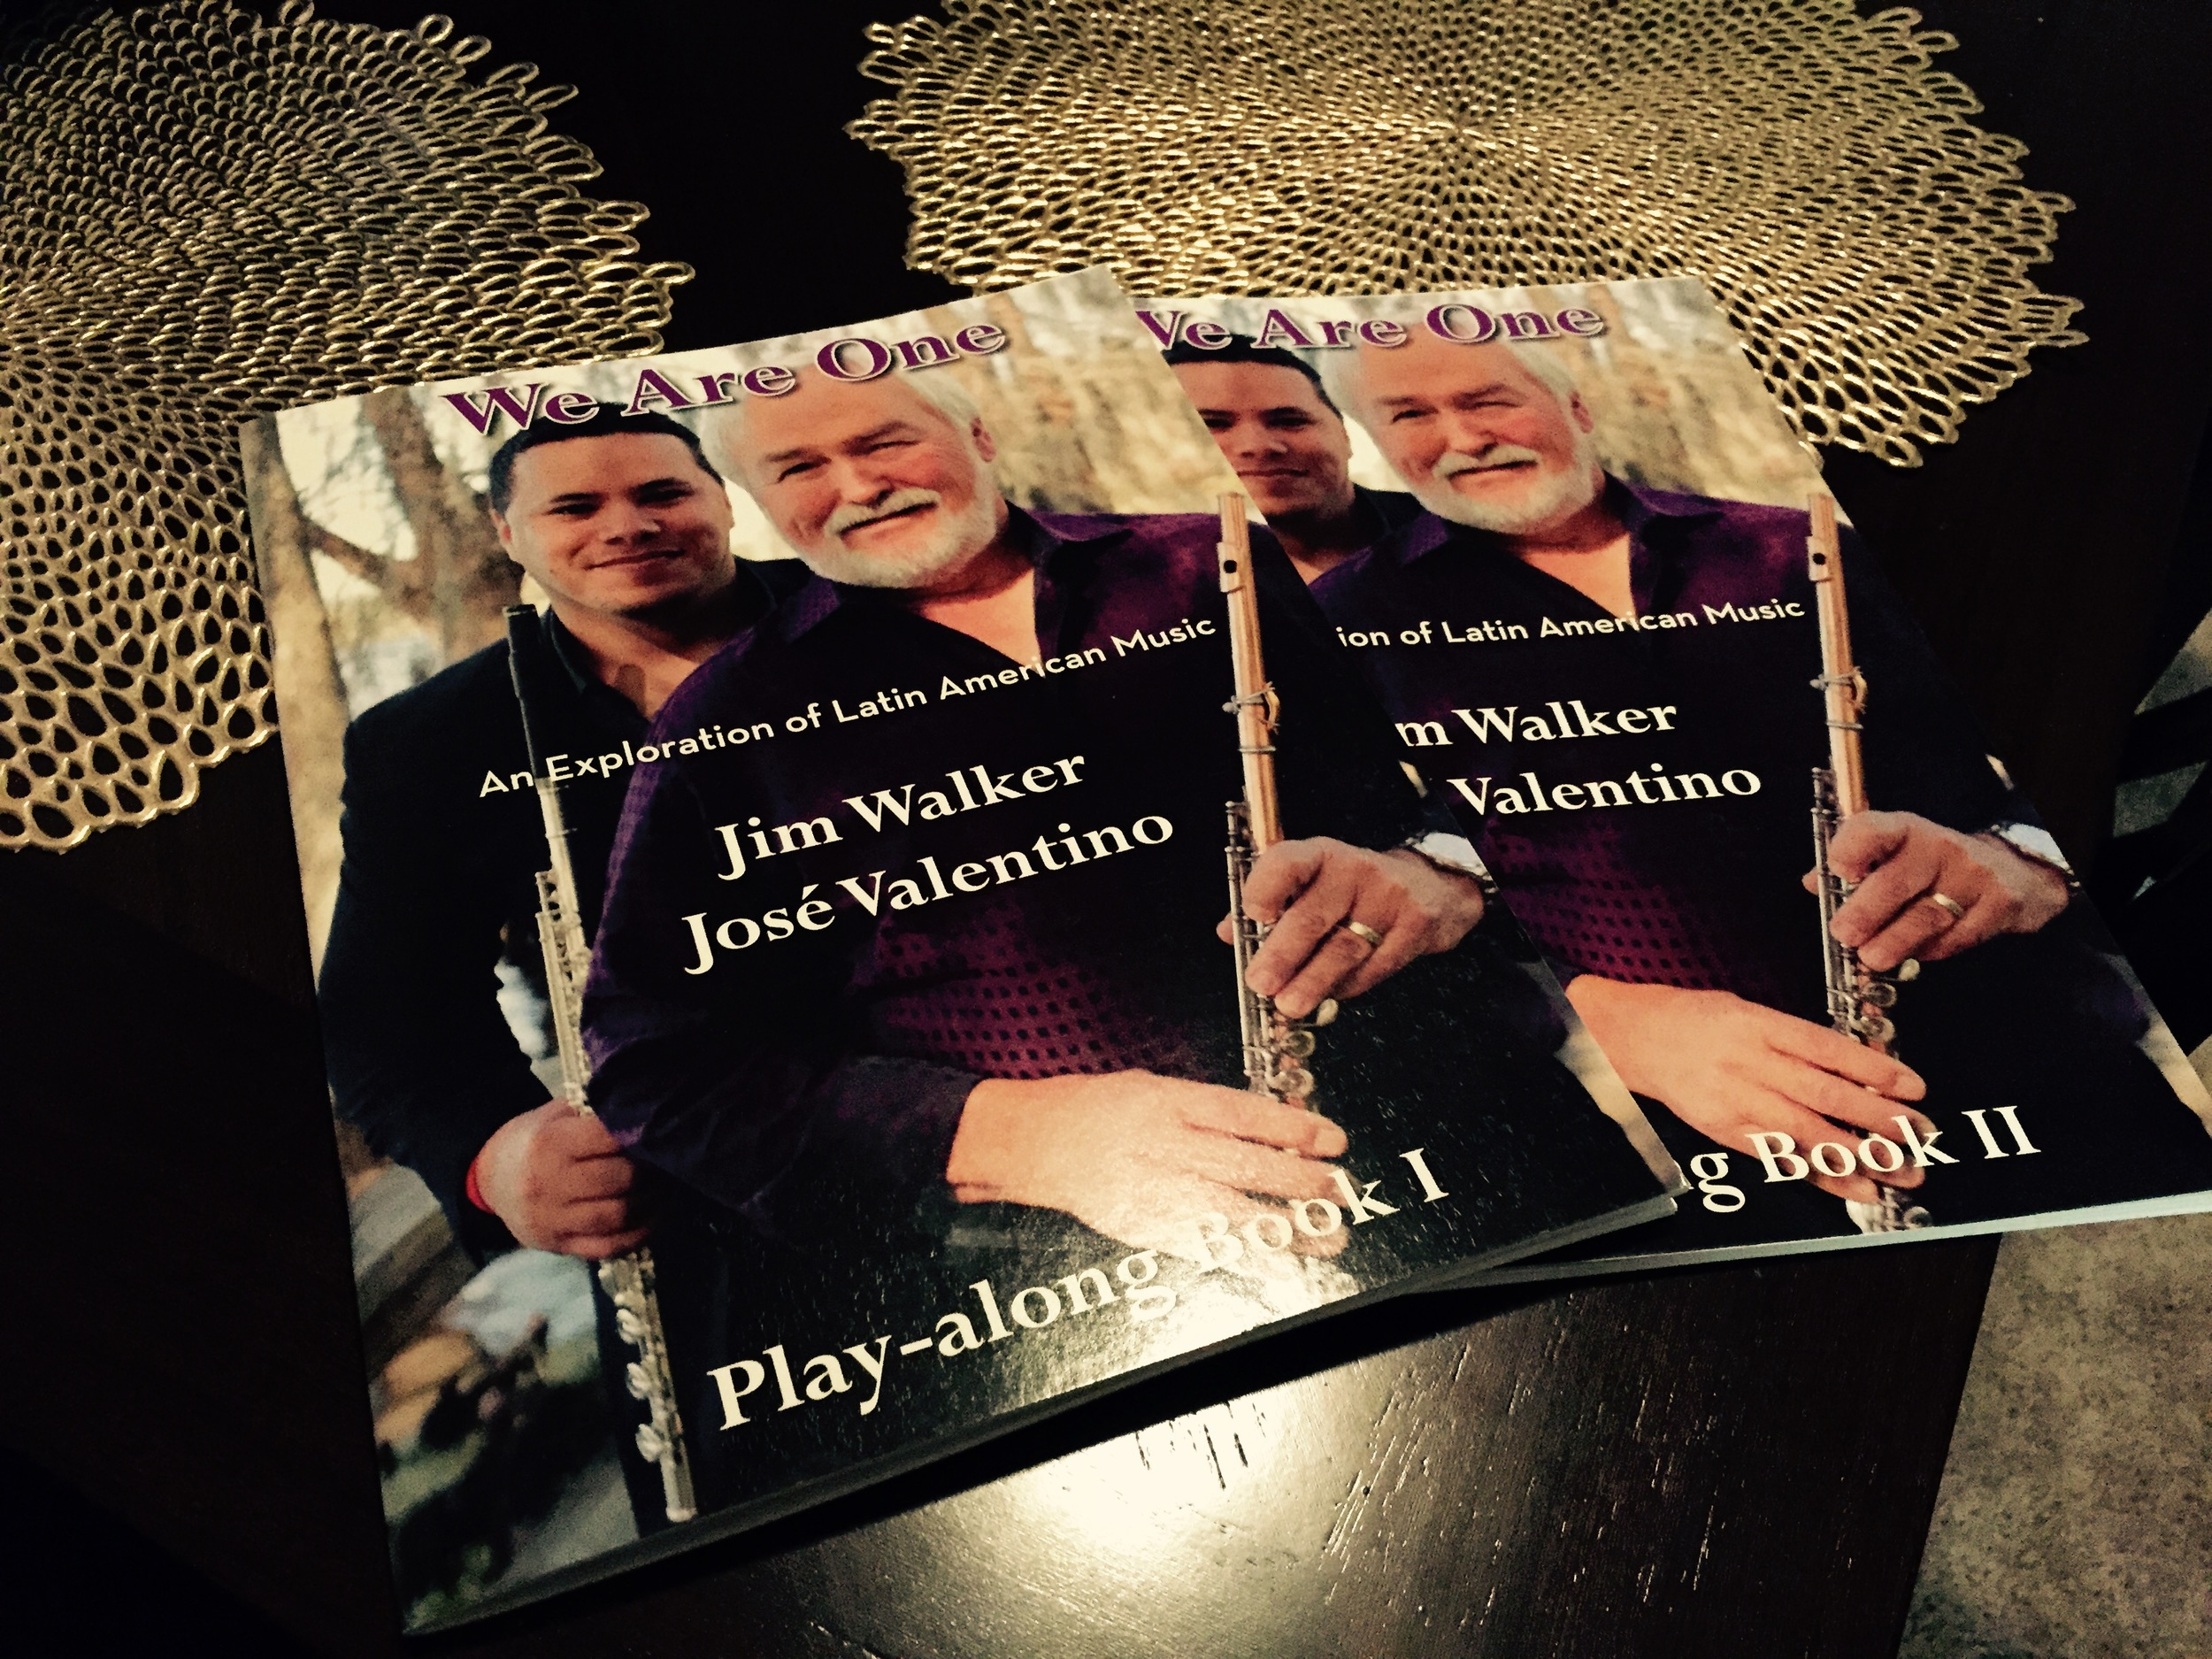 """Here are both play-along books containing full transcriptions of melodies and solos from the album, """"We Are One: An Exploration of Latin American Music."""" To purchase, send an email to jvflute@yahoo.com."""